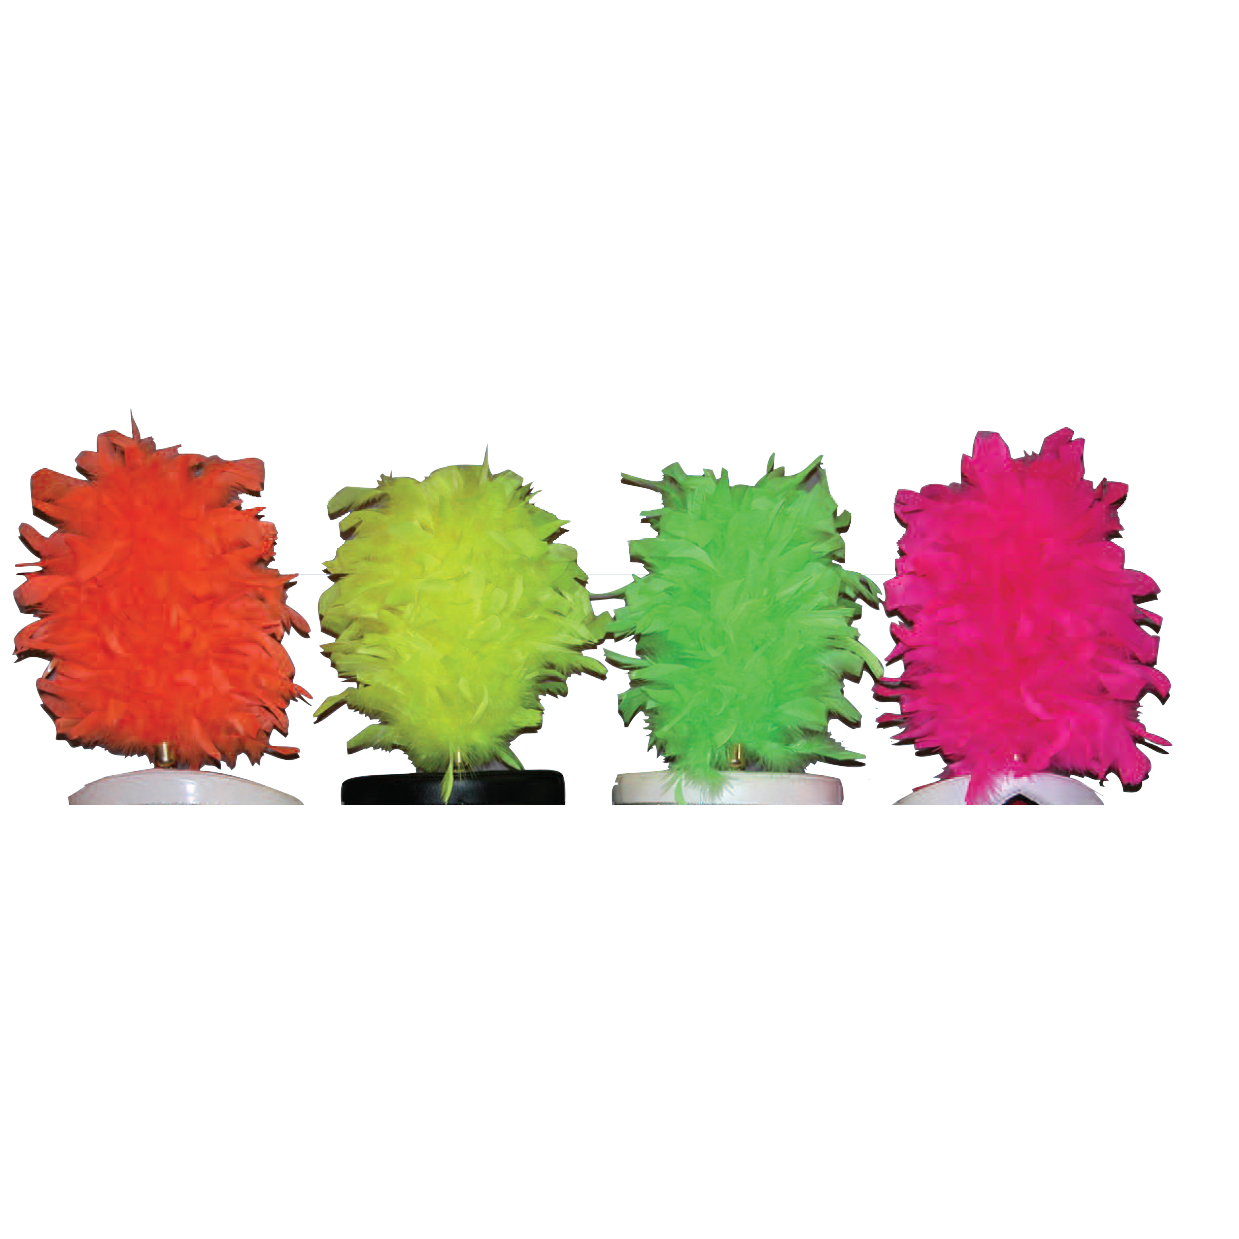 Plumes: French Upright Fluorescent